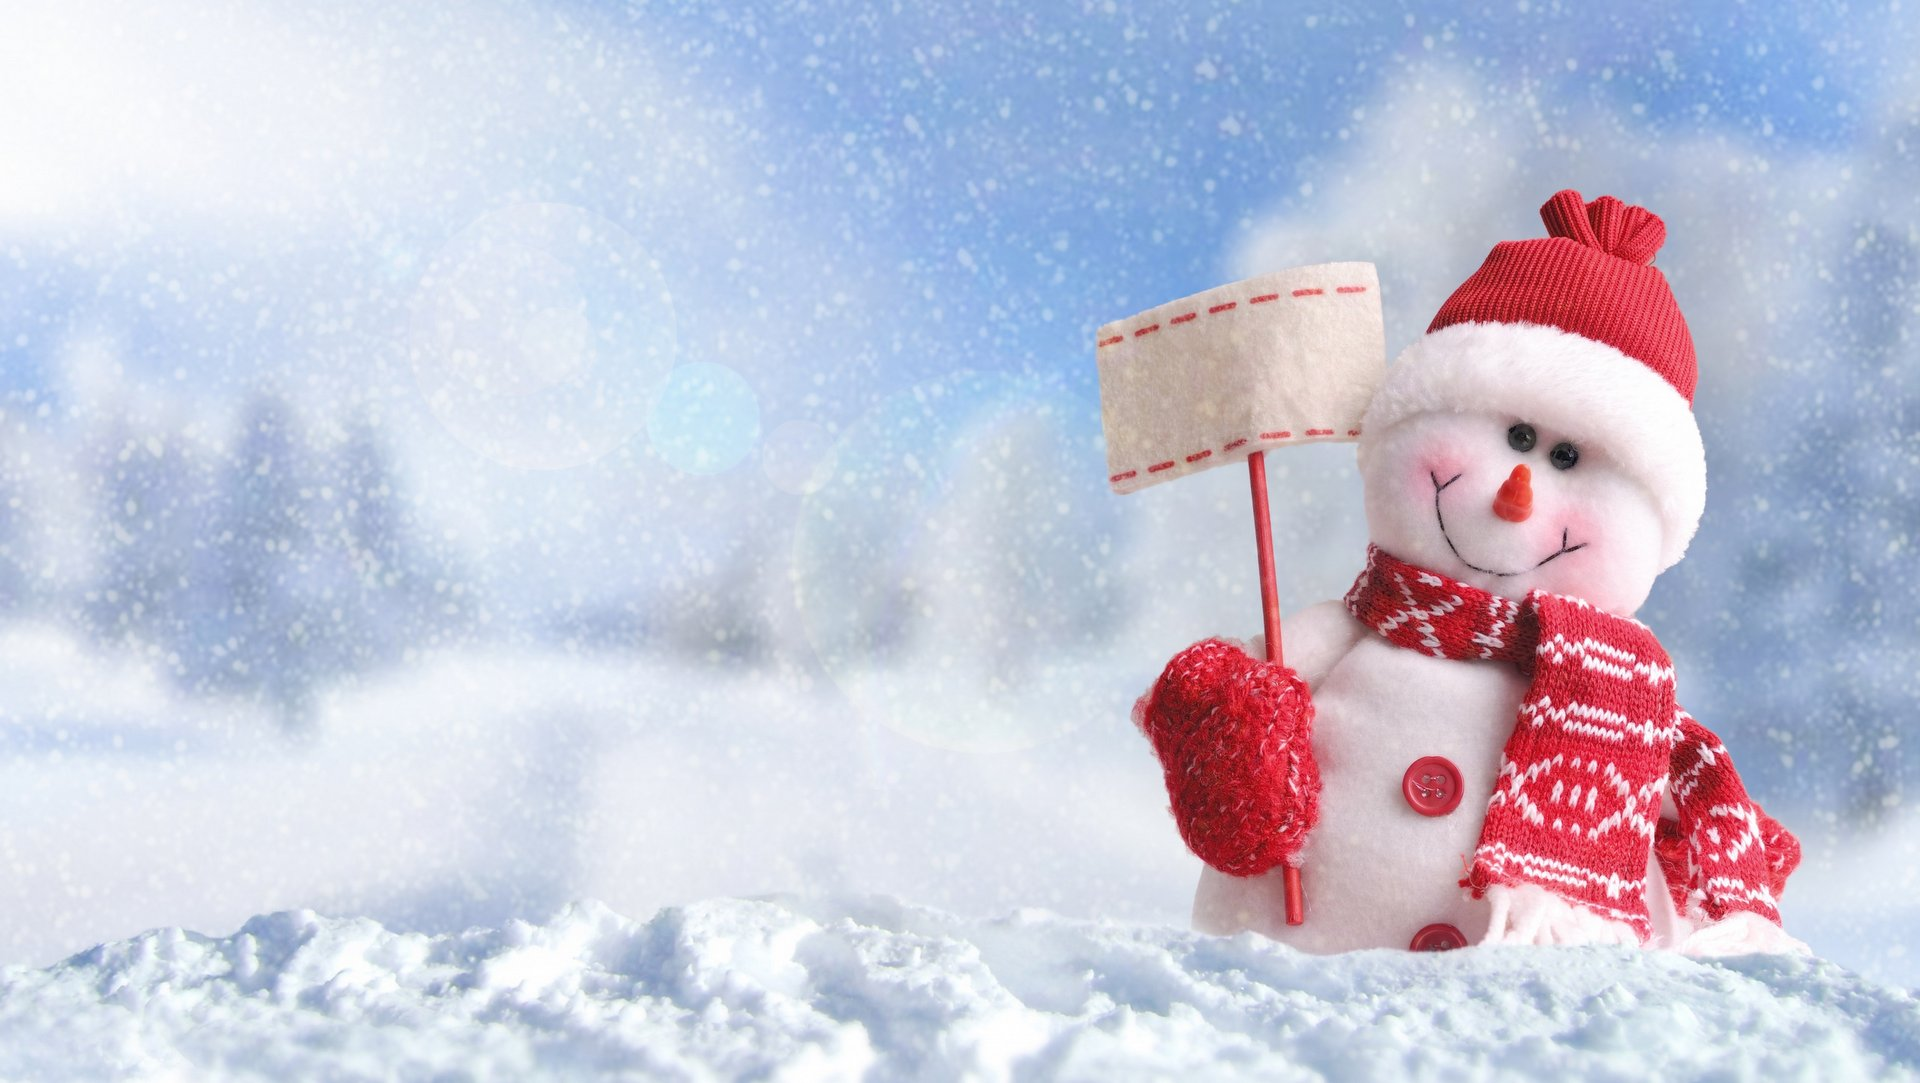 Christmas Snowmen Winter HD Wallpaper 1920x1080